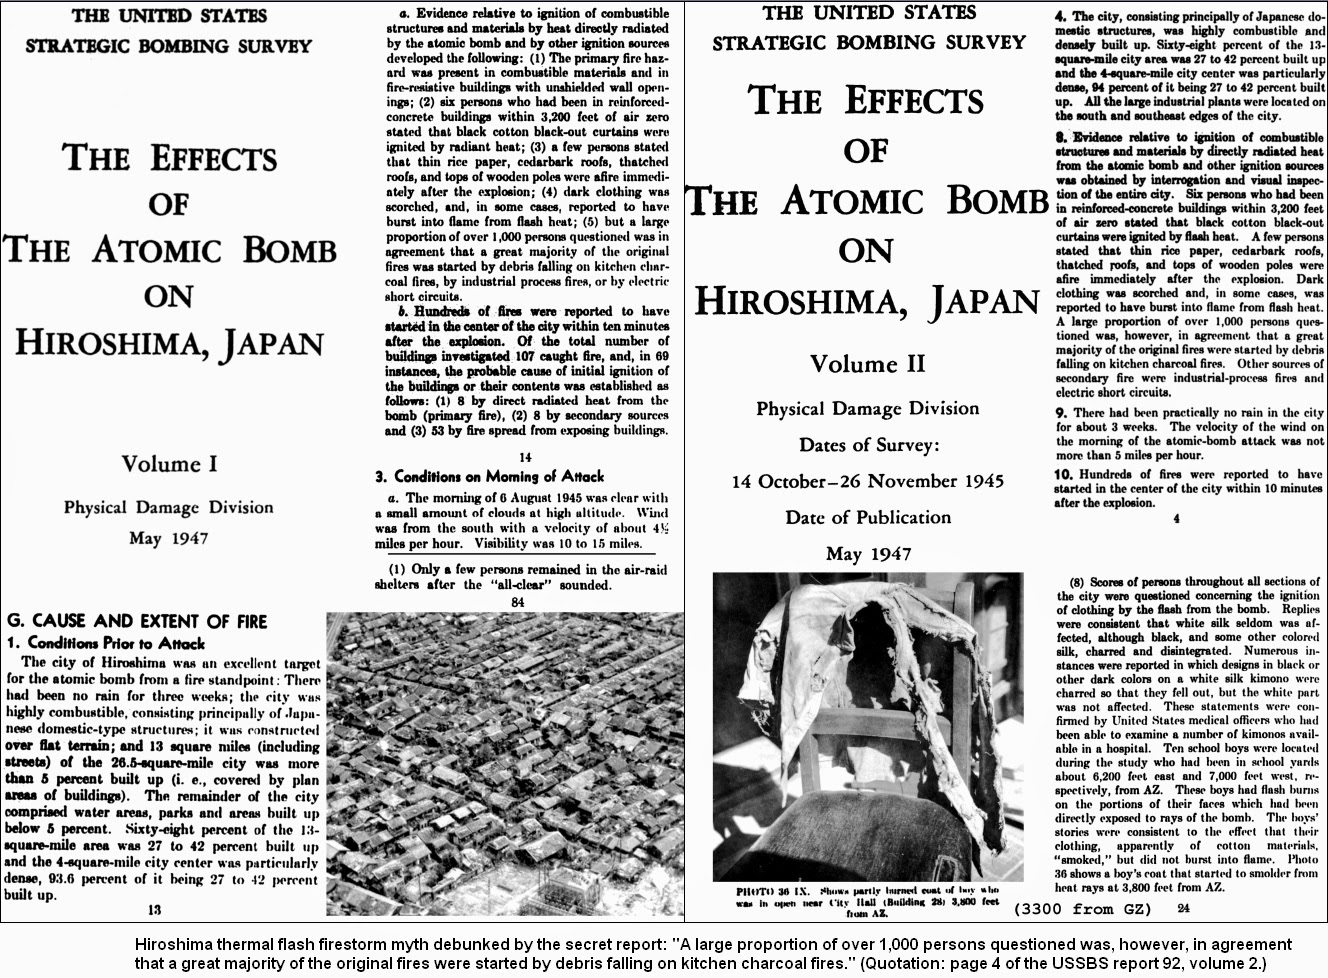 hiroshima essay prompts Check out a custom written essay sample that provides exact details of atomic bombing in hiroshima and nagasaki.